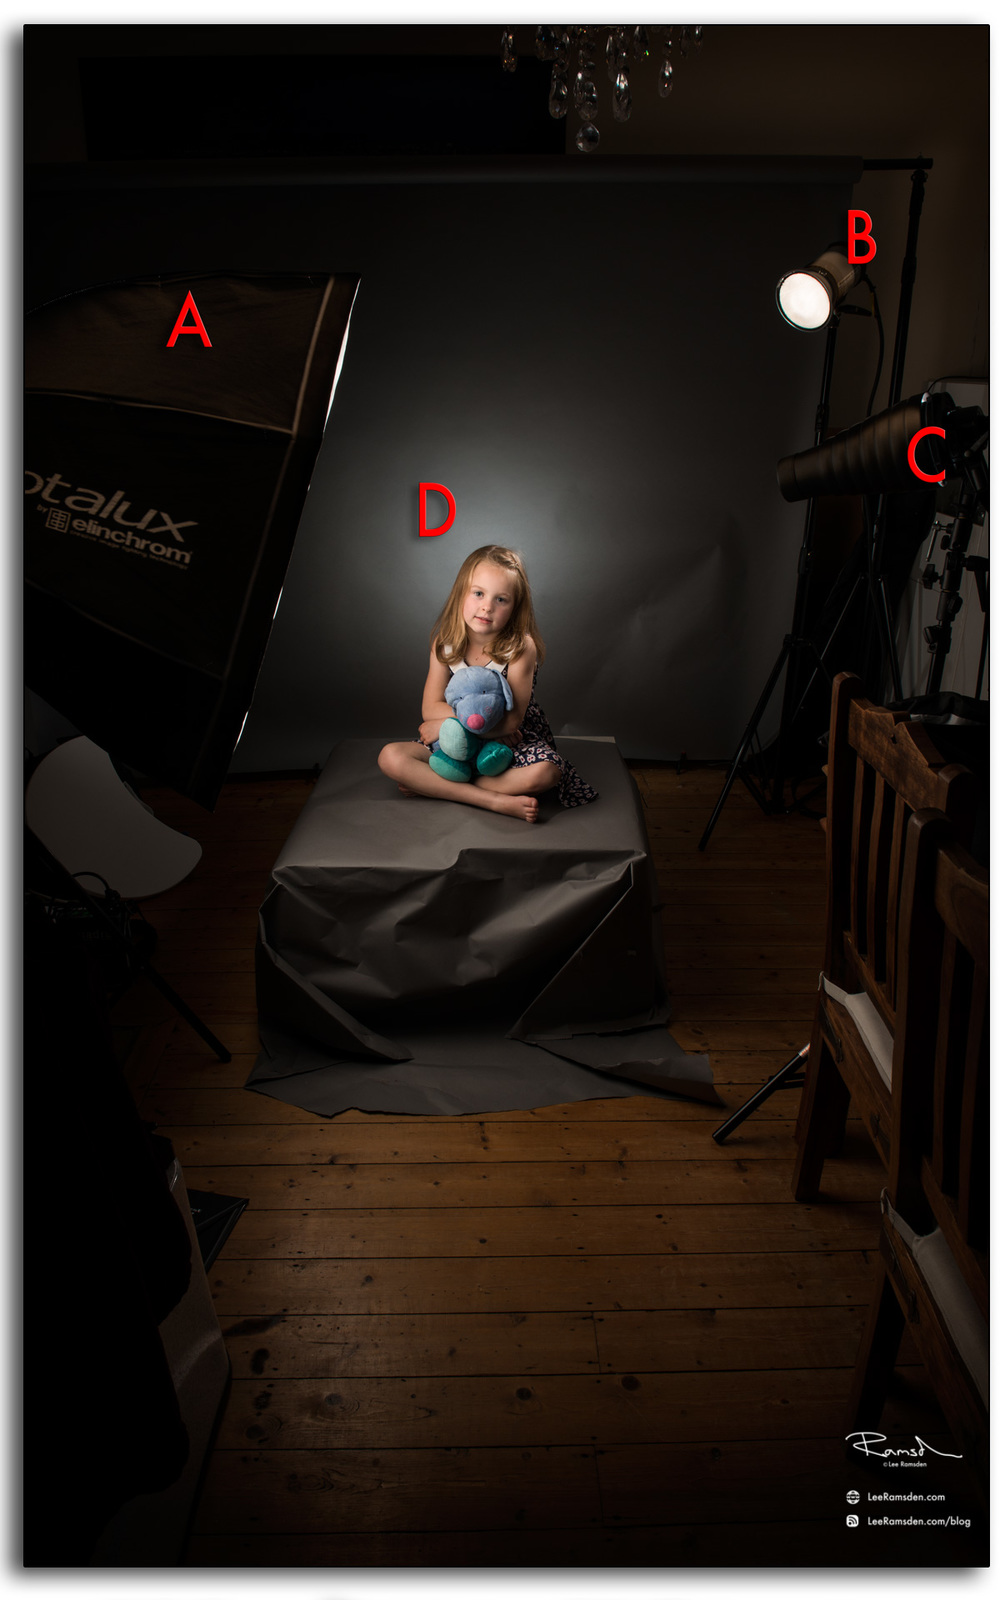 Lee Ramsden lighting set up, behind the scenes BTS elinchrom ranger quadra nikon D800 small home studio